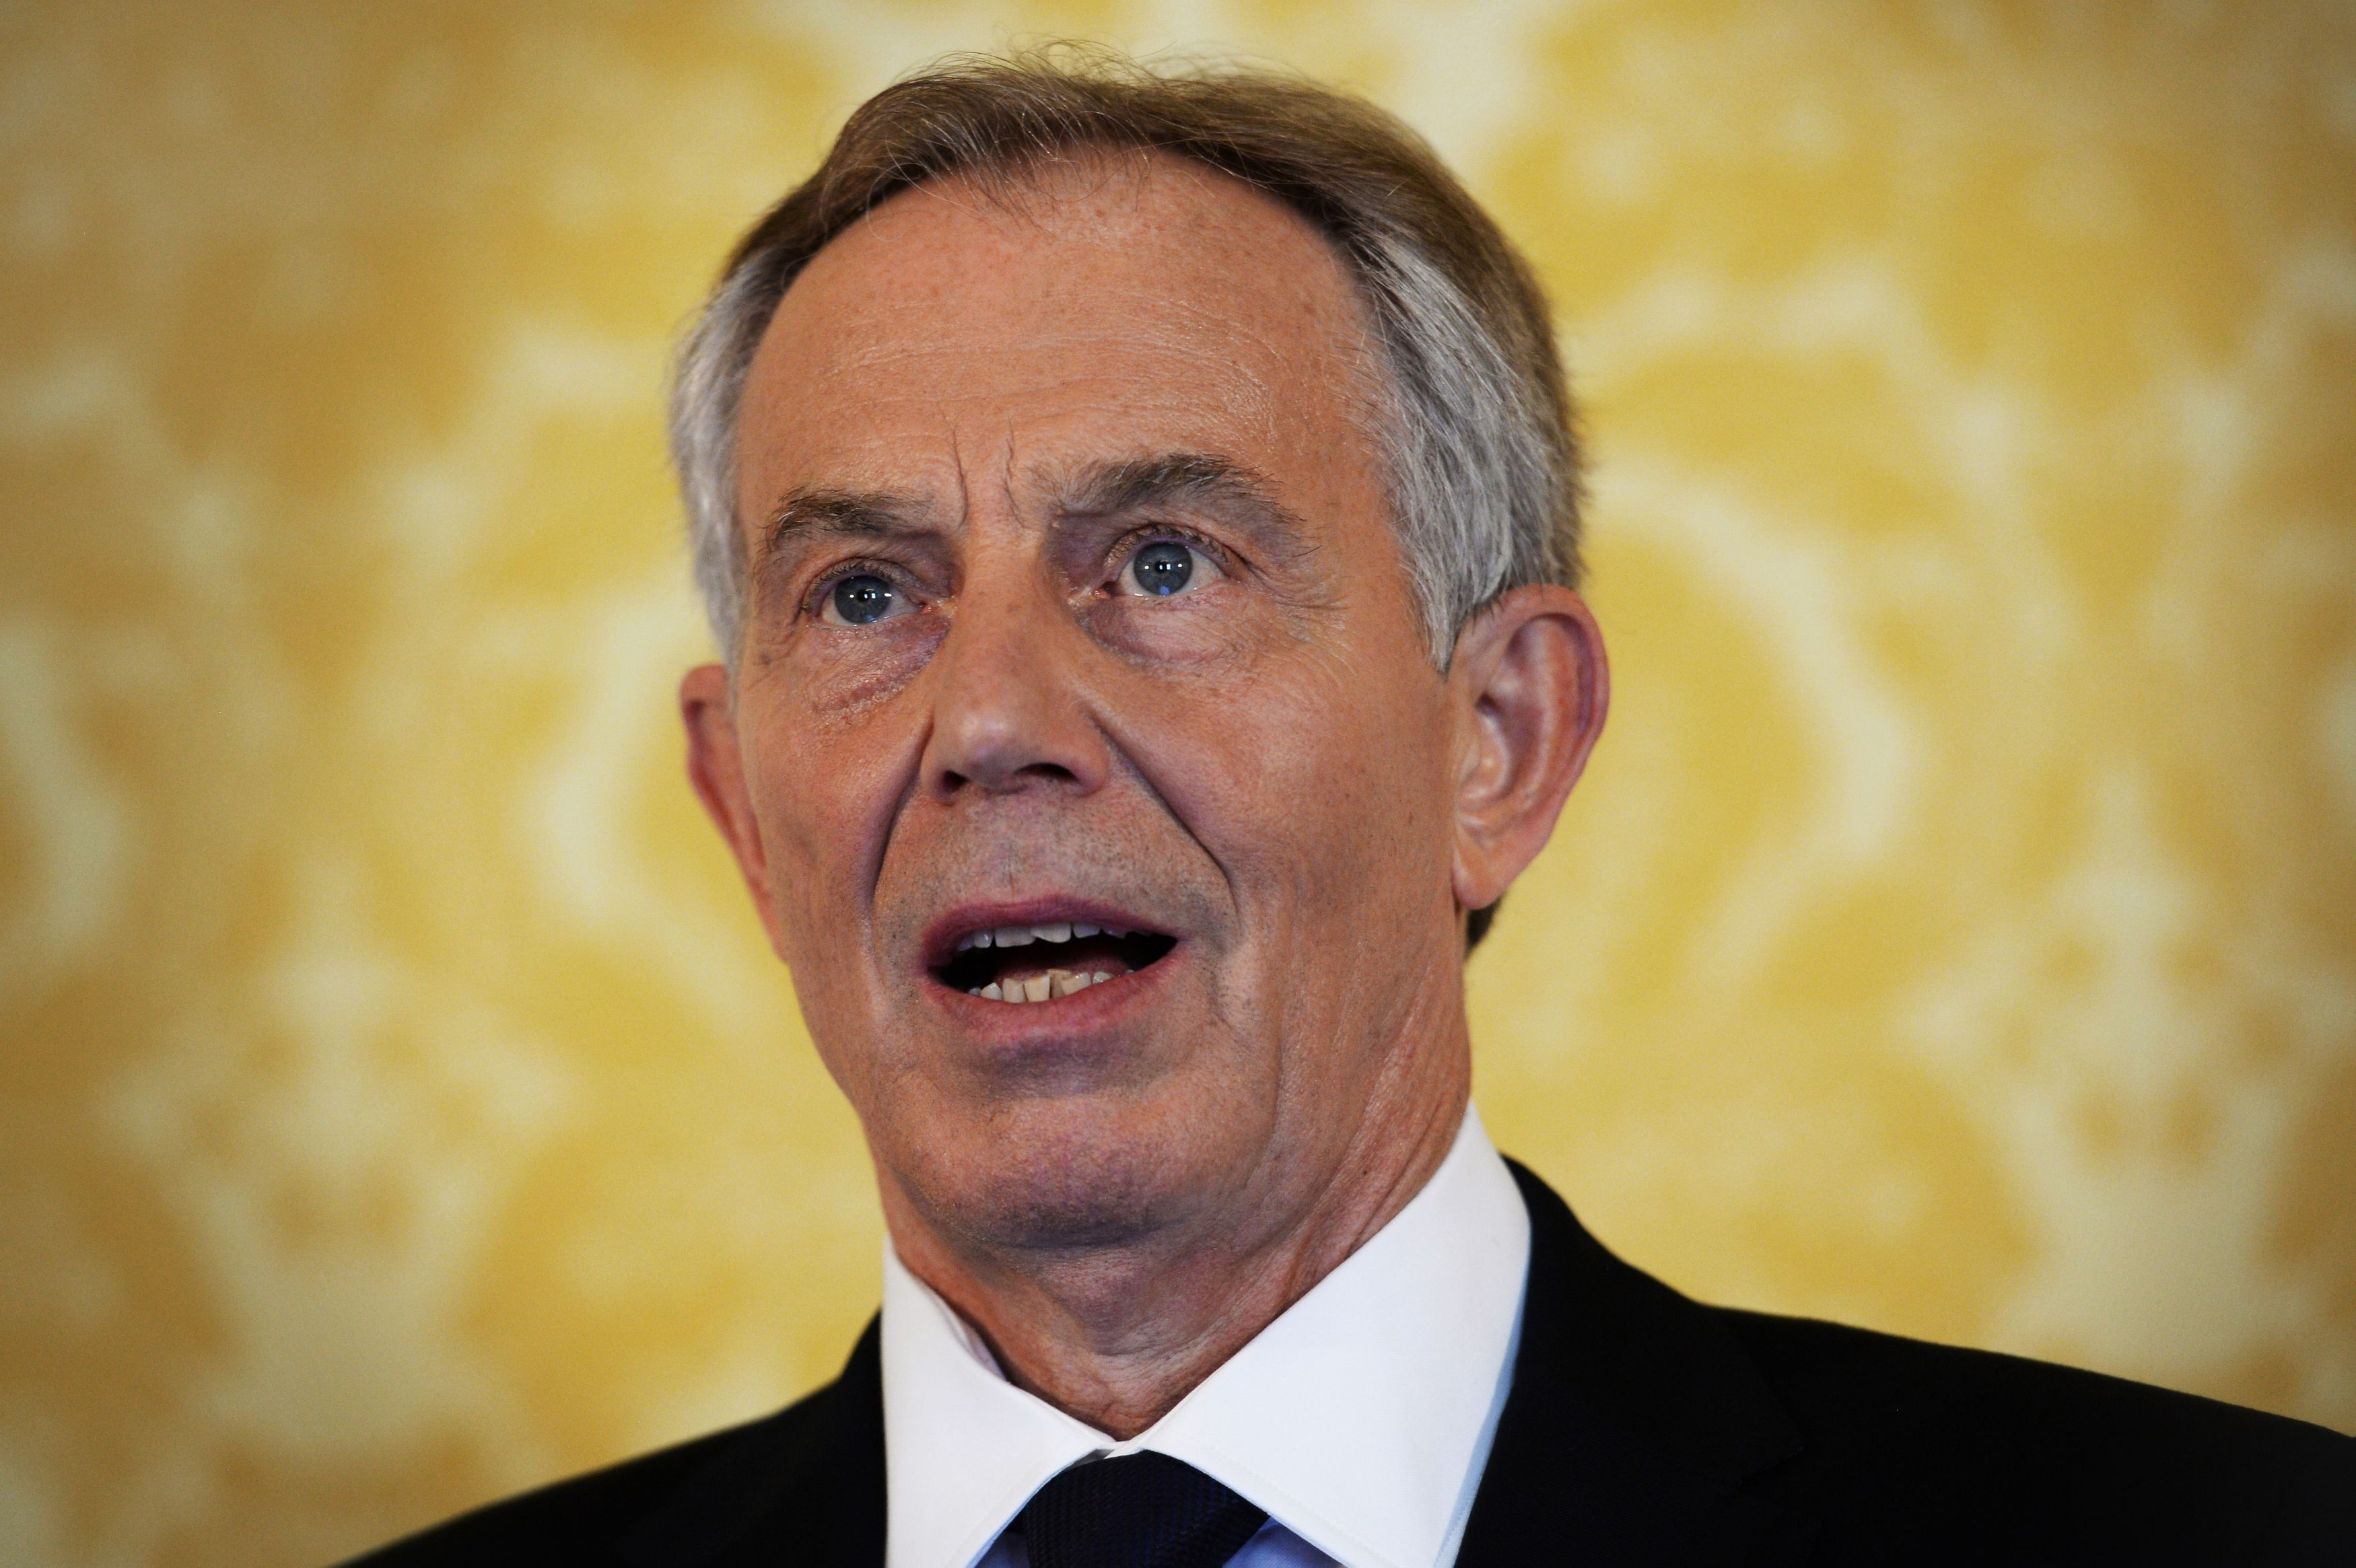 Tony Blair 'Very Sorry' Over Soldiers' Abuse Investigation